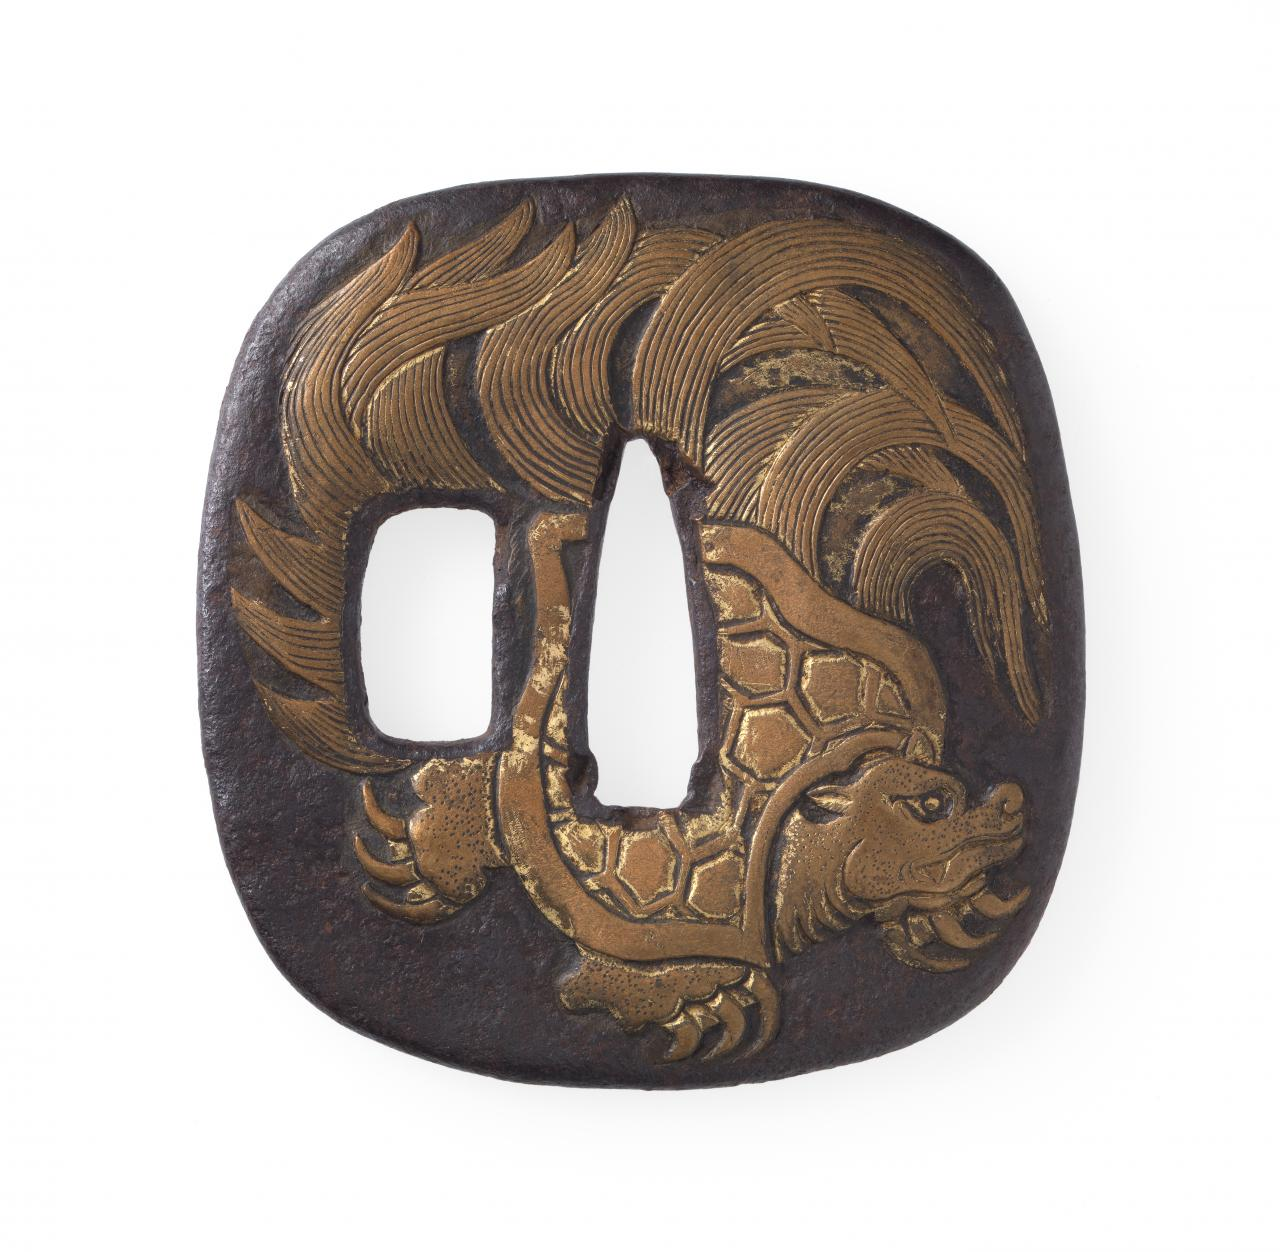 Sword guard with ancient tortoise design